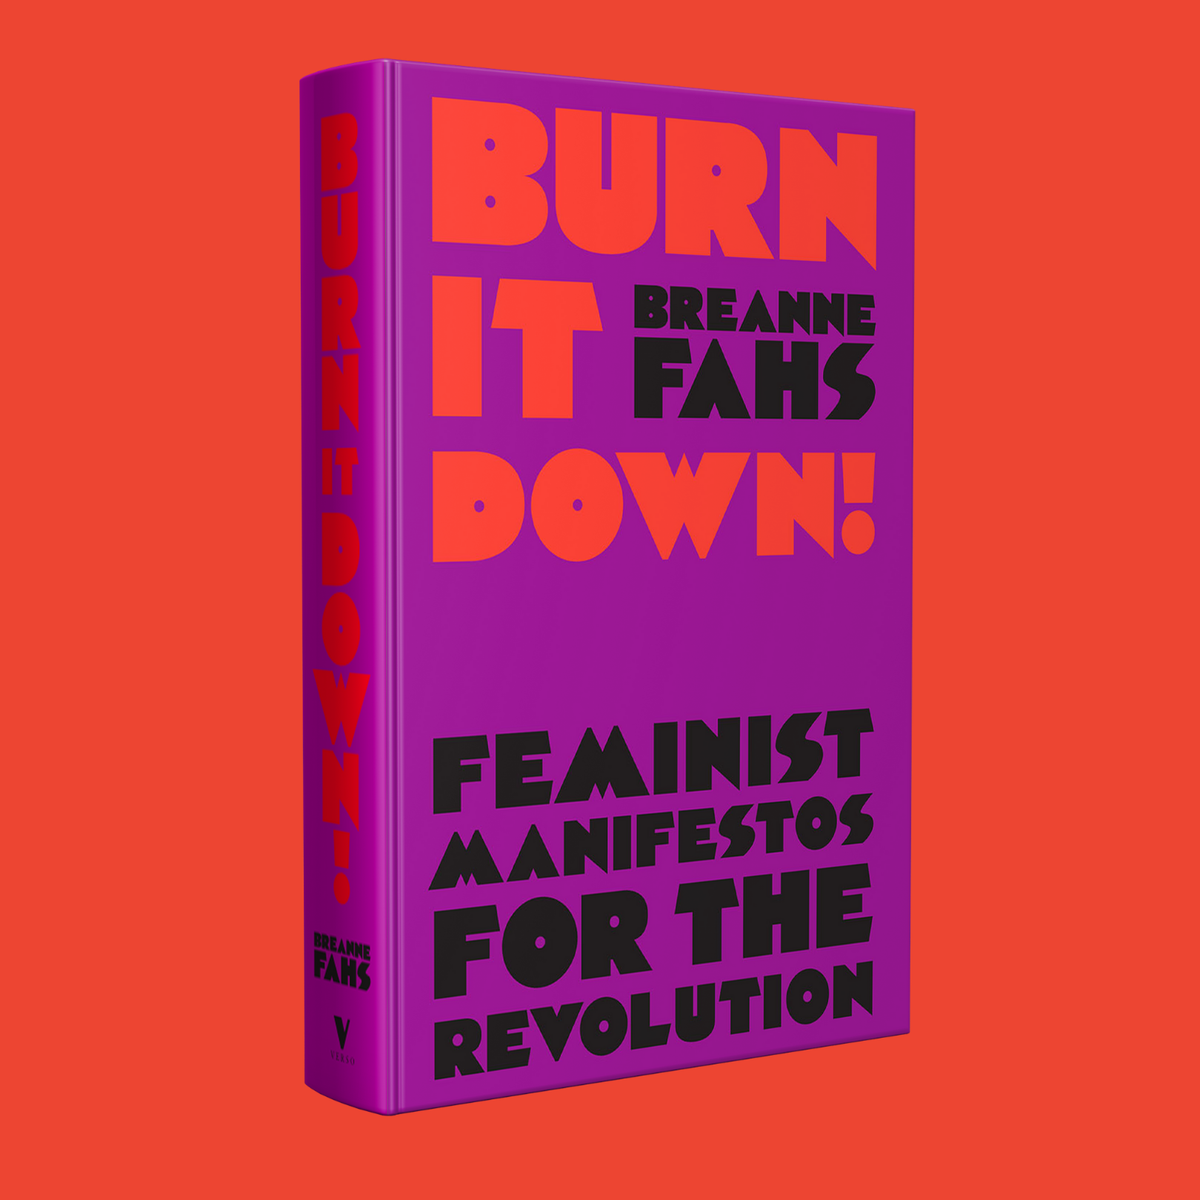 "Burn It Down! Feminist Manifestos for the Revolution edited by Breanne Fahs, now 40% off!  ""An invaluable reminder of feminism's radical and revolutionary visions."" – Soraya Chemaly, author of Rage Becomes Her  https://www.versobooks.com/books/3151-burn-it-down …pic.twitter.com/nPKu0bCkLF"